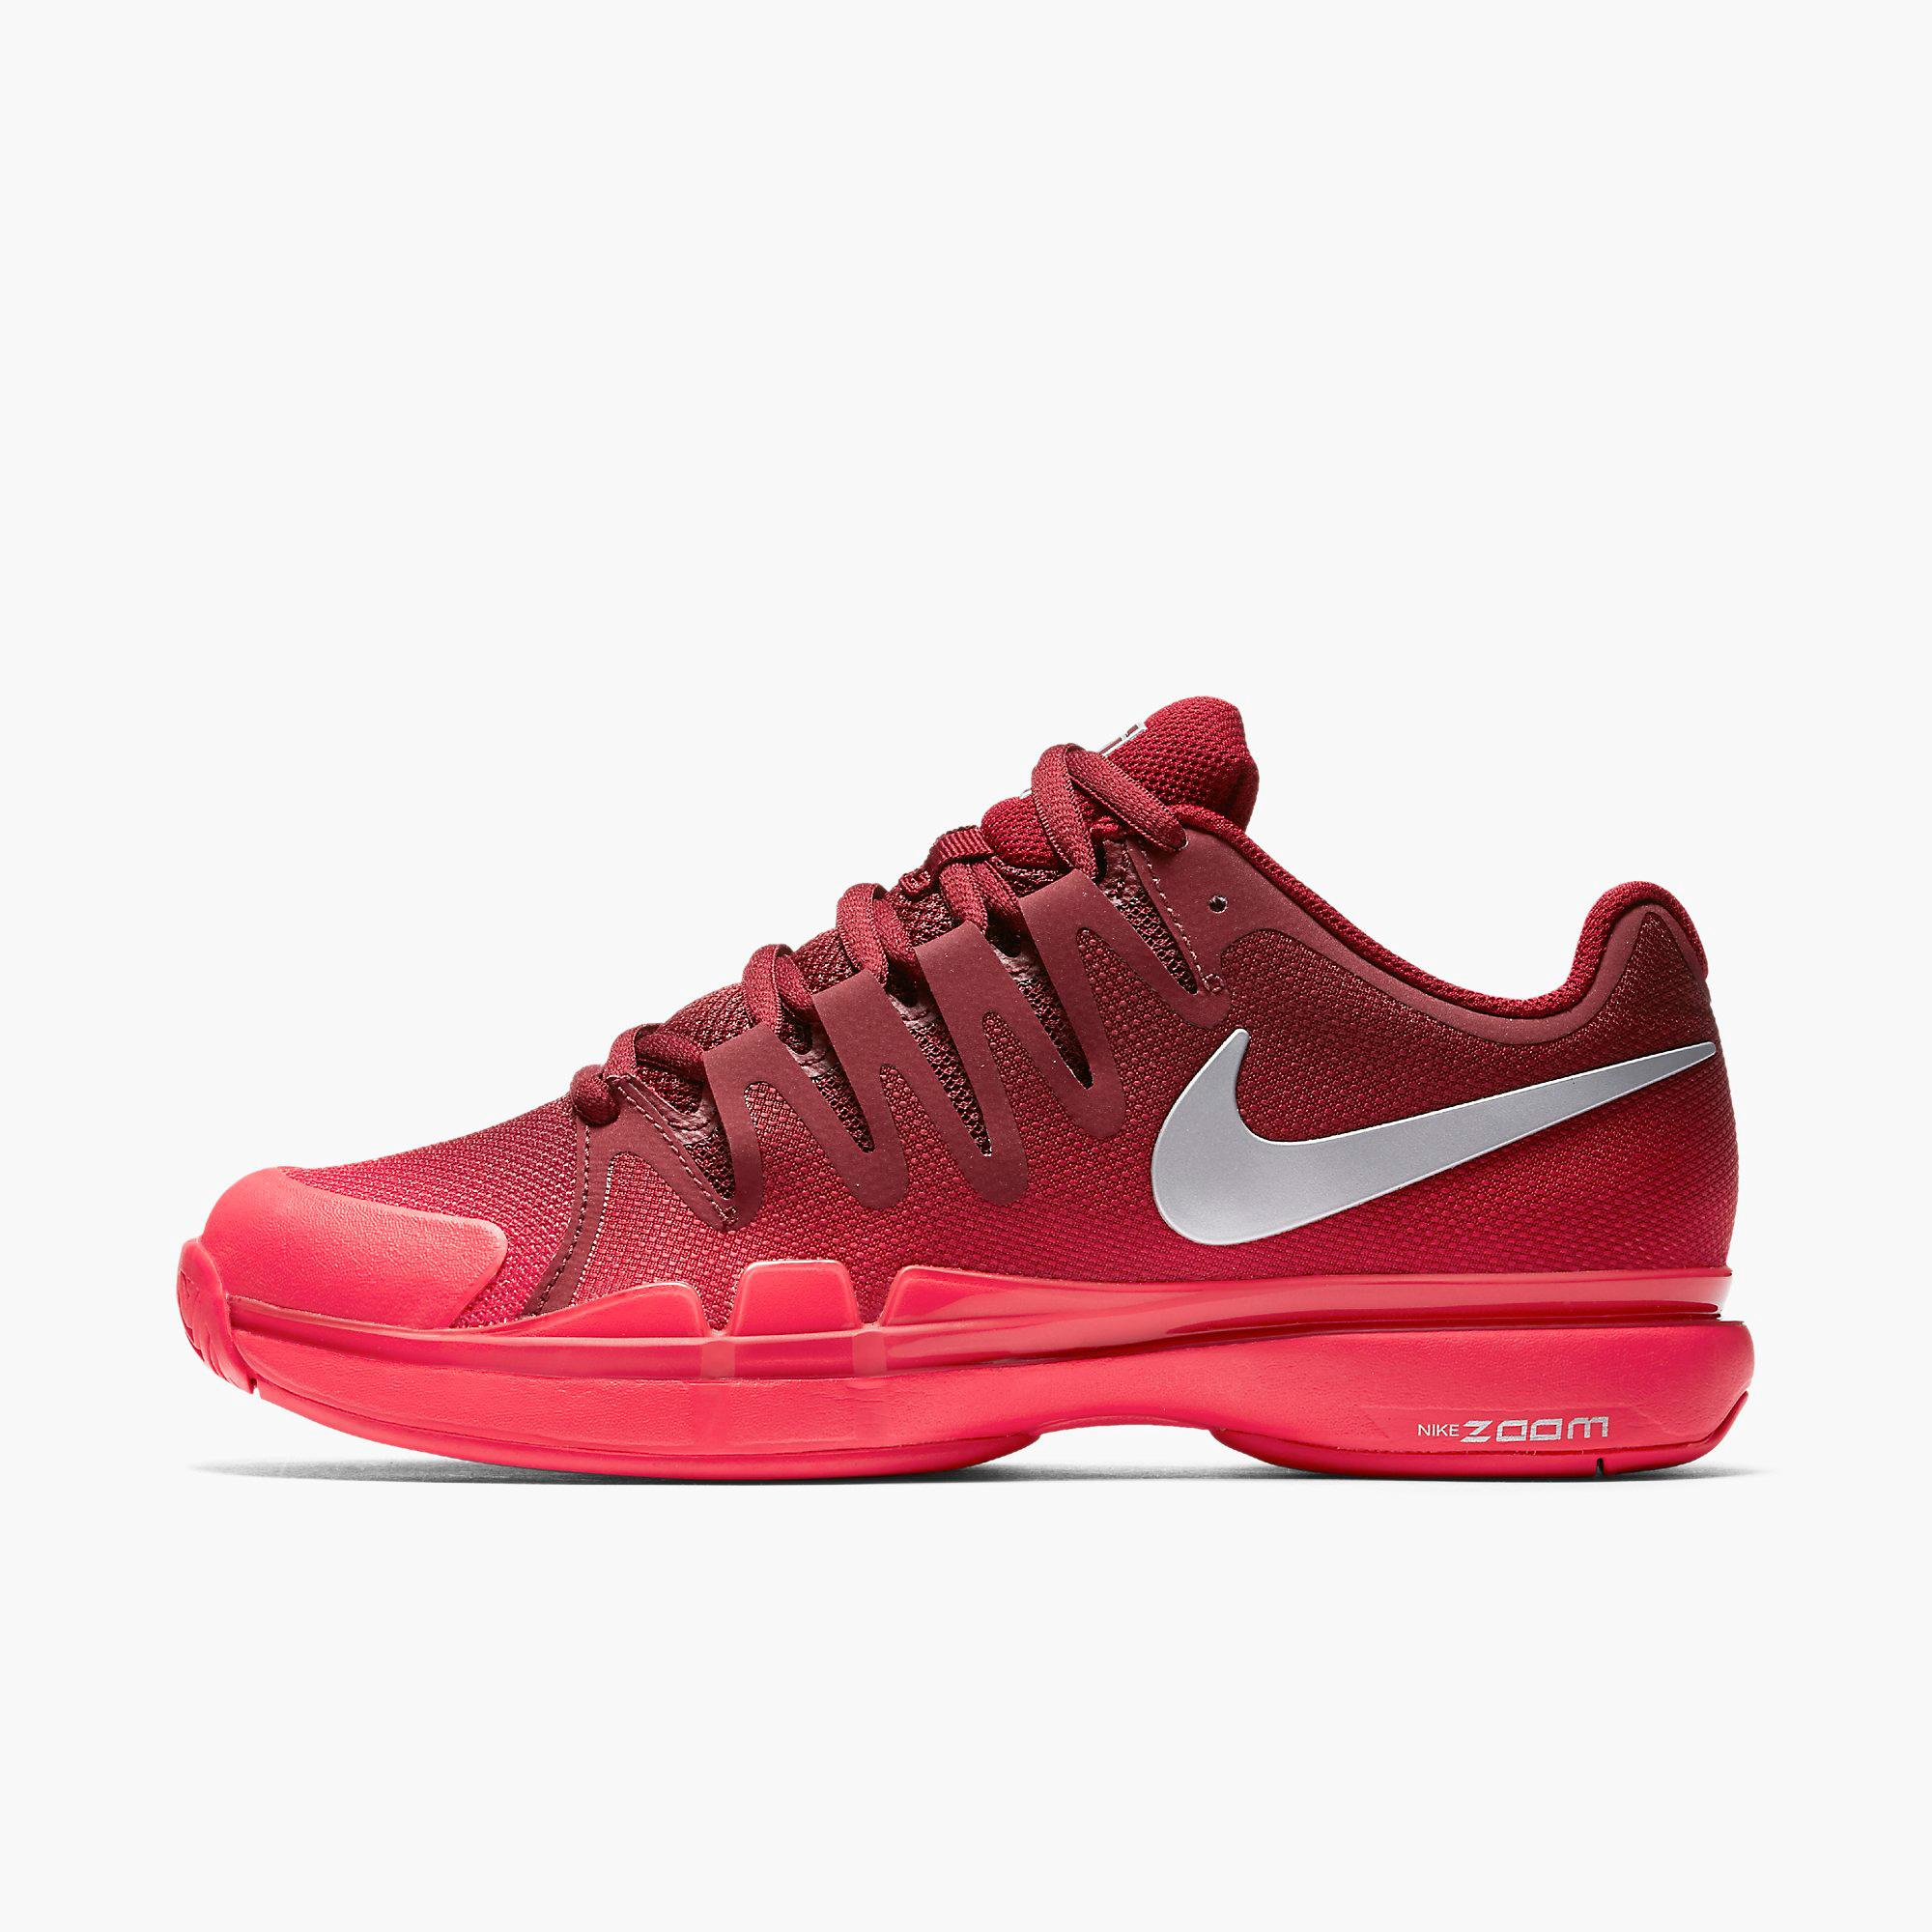 Red Womens Nike Tennis Shoes